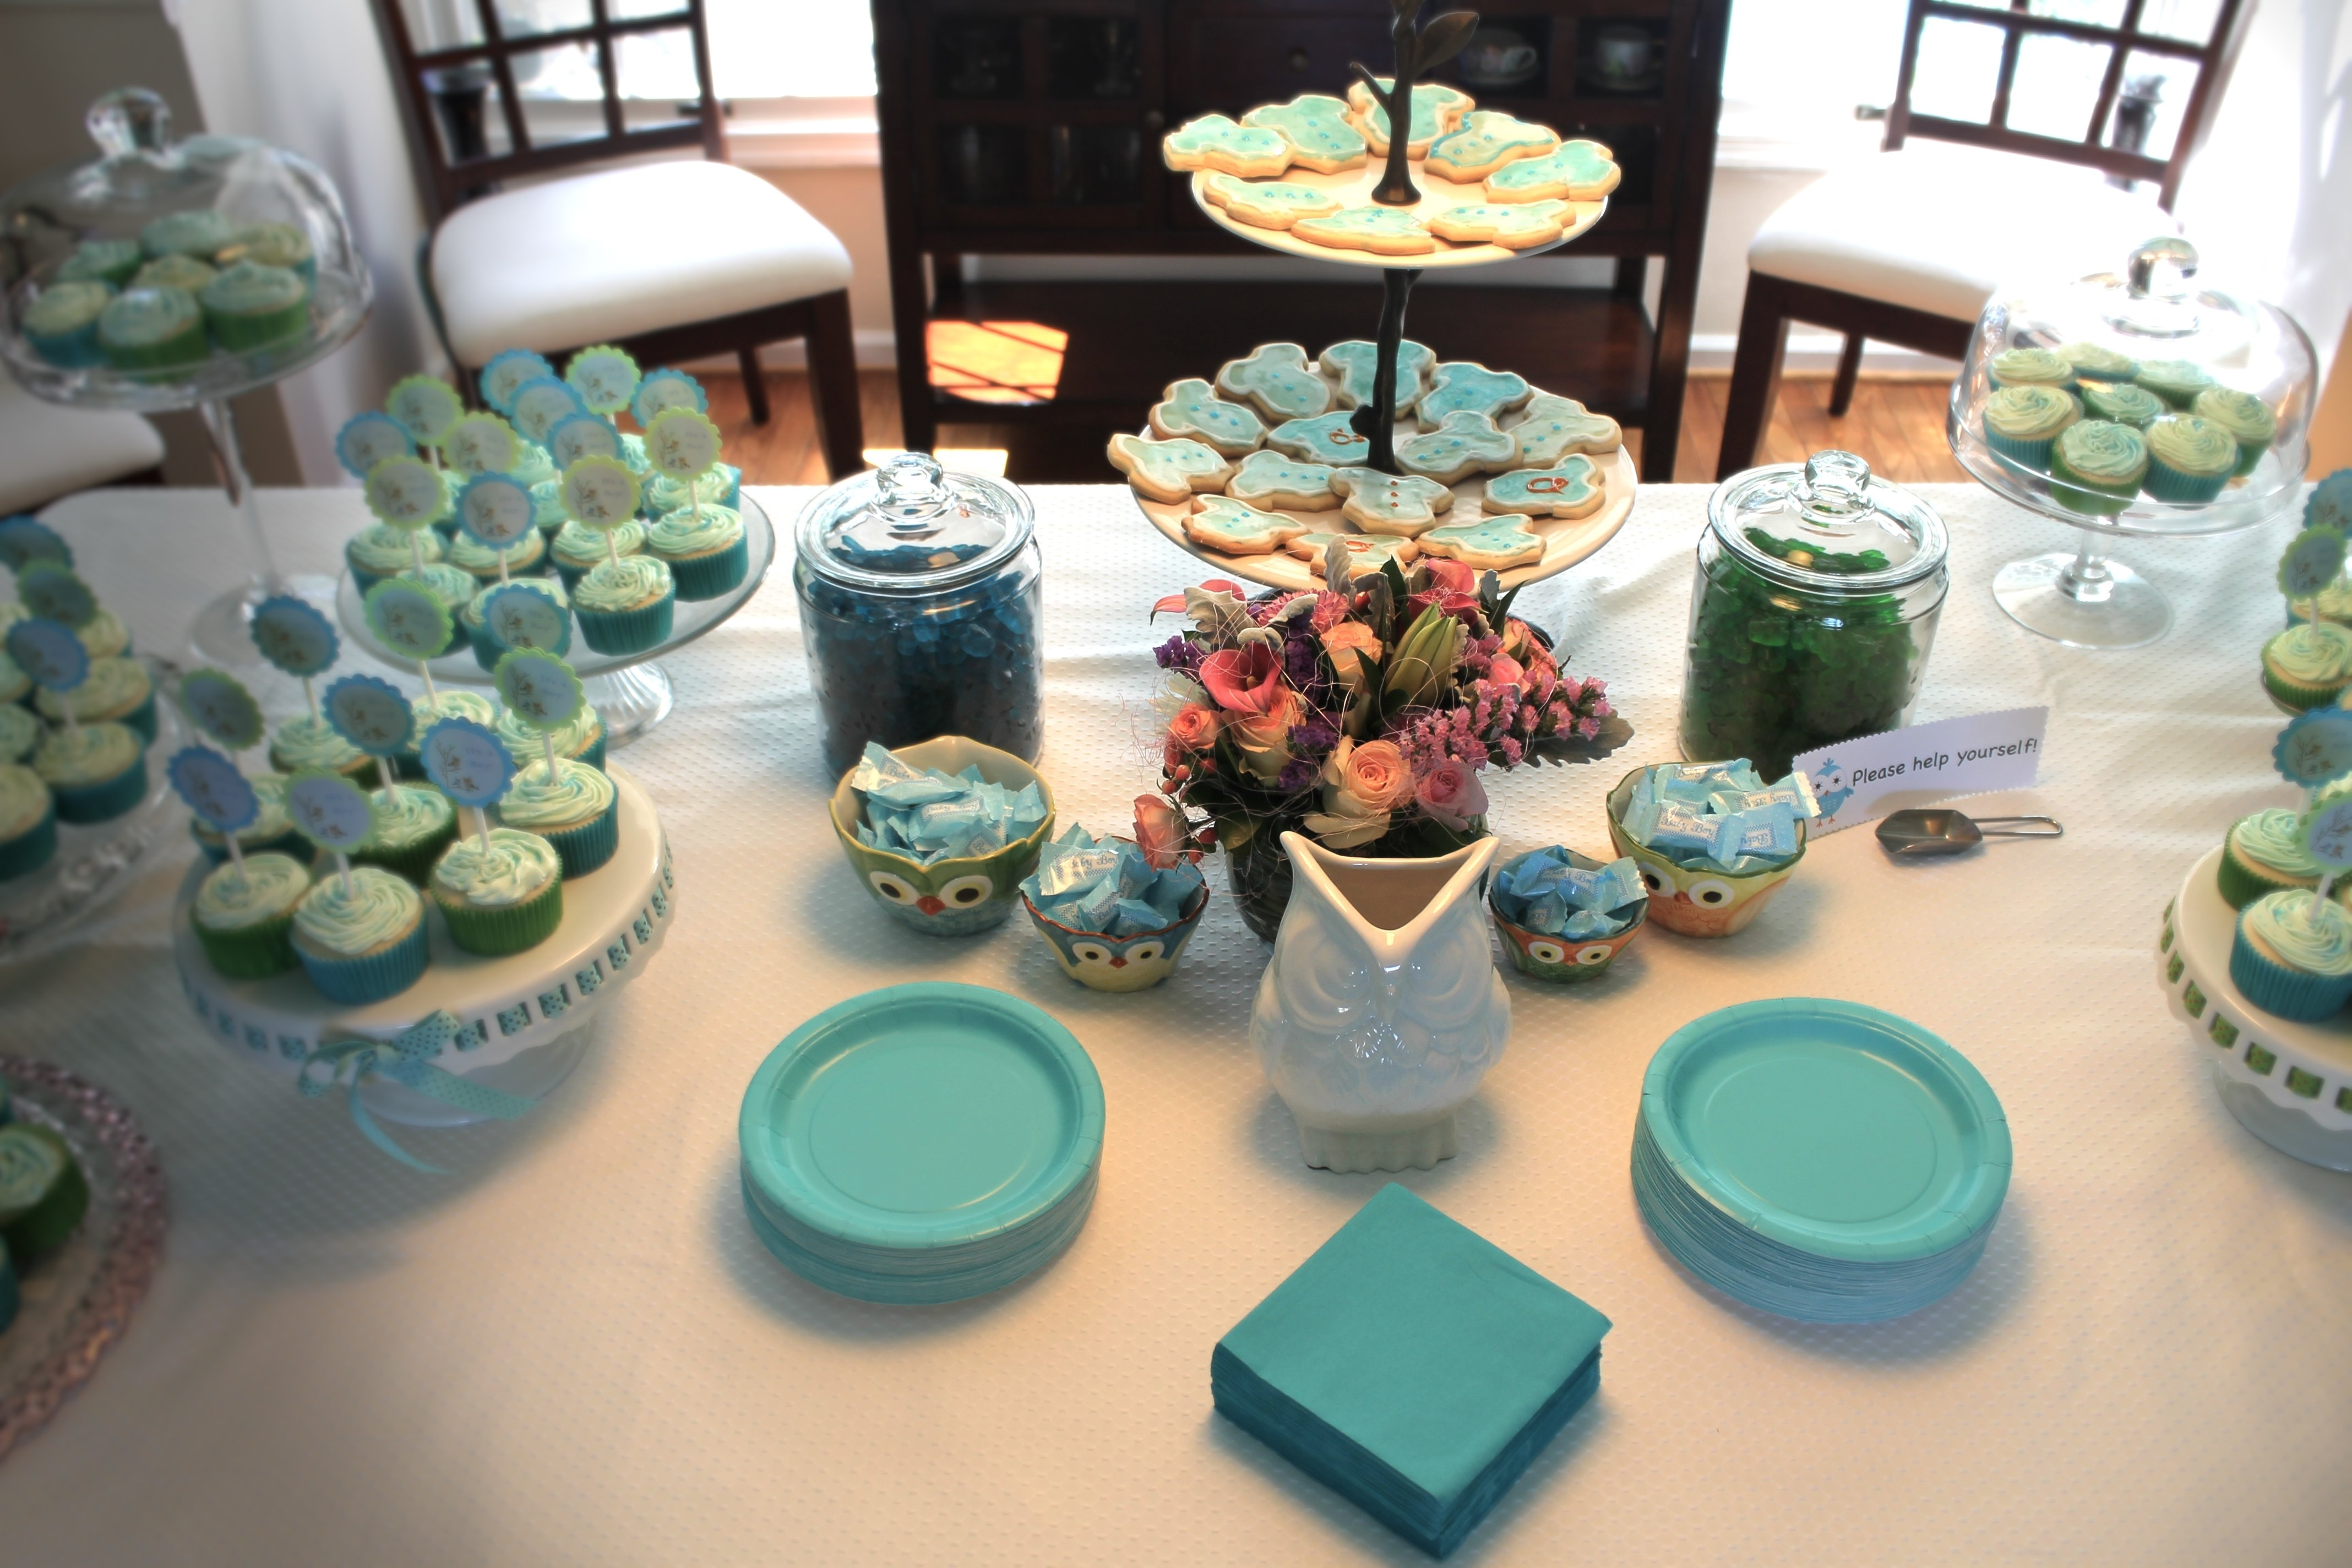 10 Attractive Baby Shower Ideas For Boys On A Budget baby shower ideas for boys on a budget omega center ideas 2020